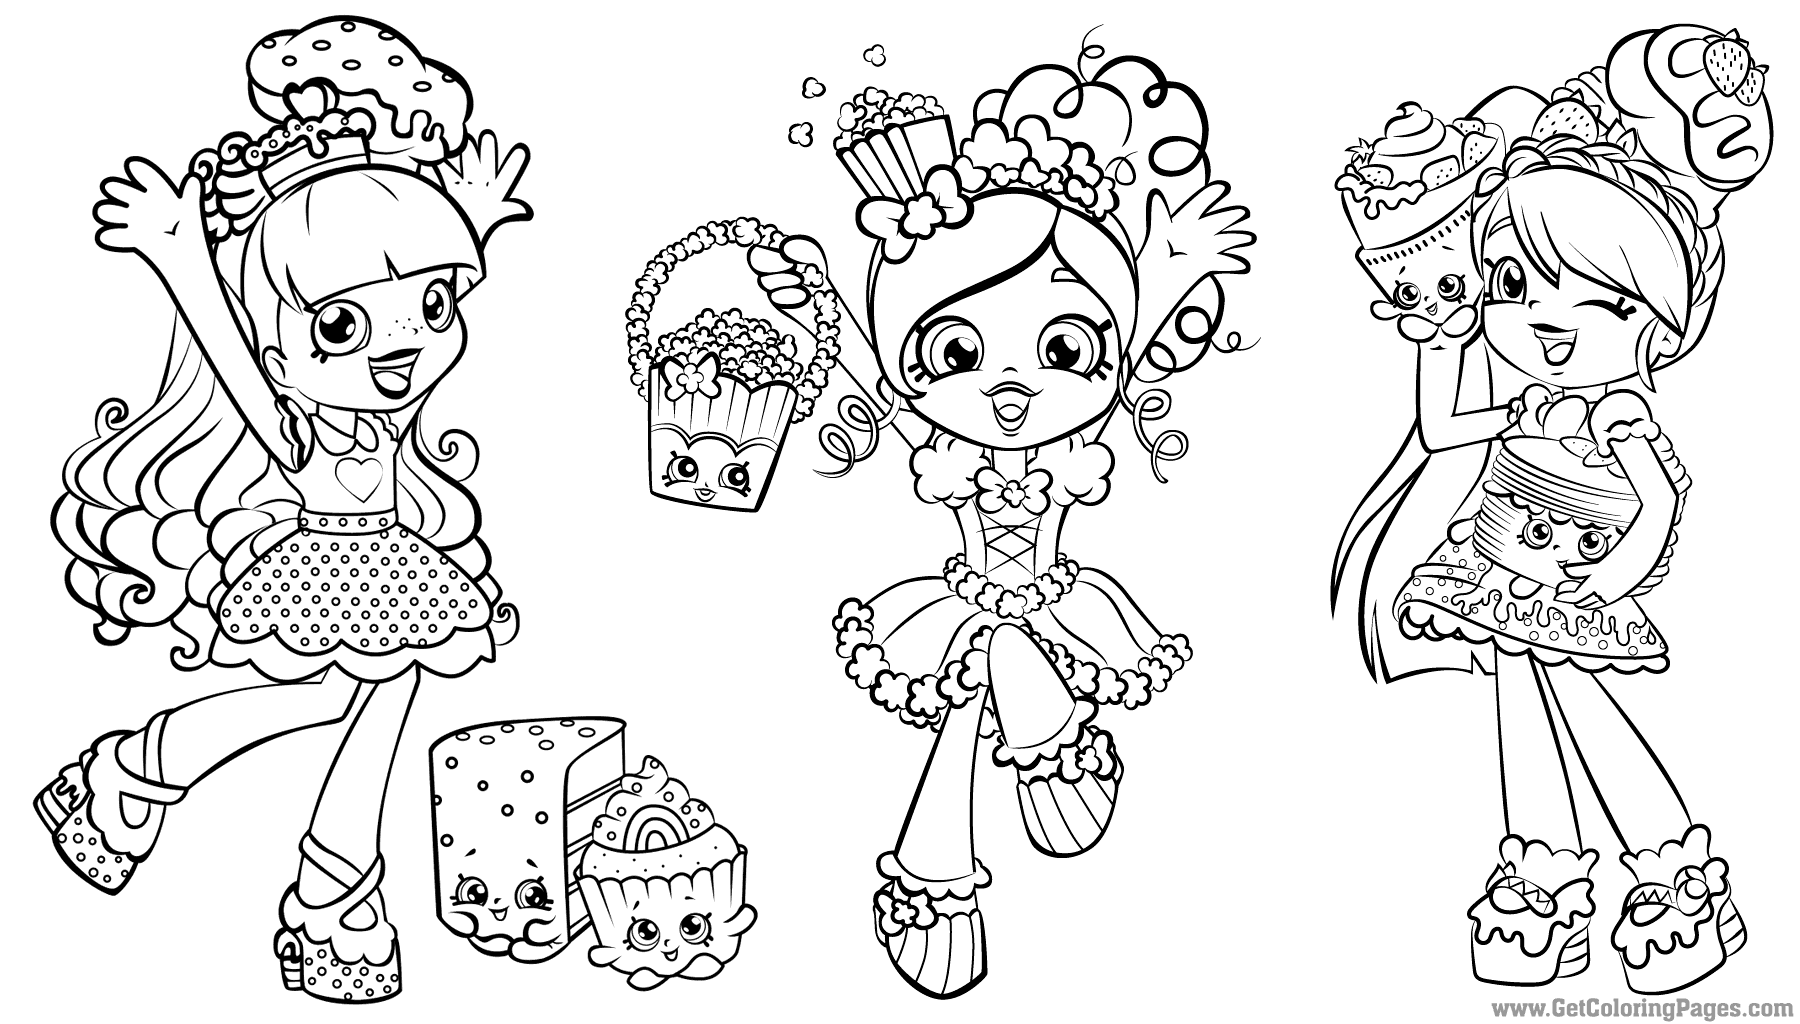 Pin by Tammi Sheridan on Color Me Shopkin coloring pages